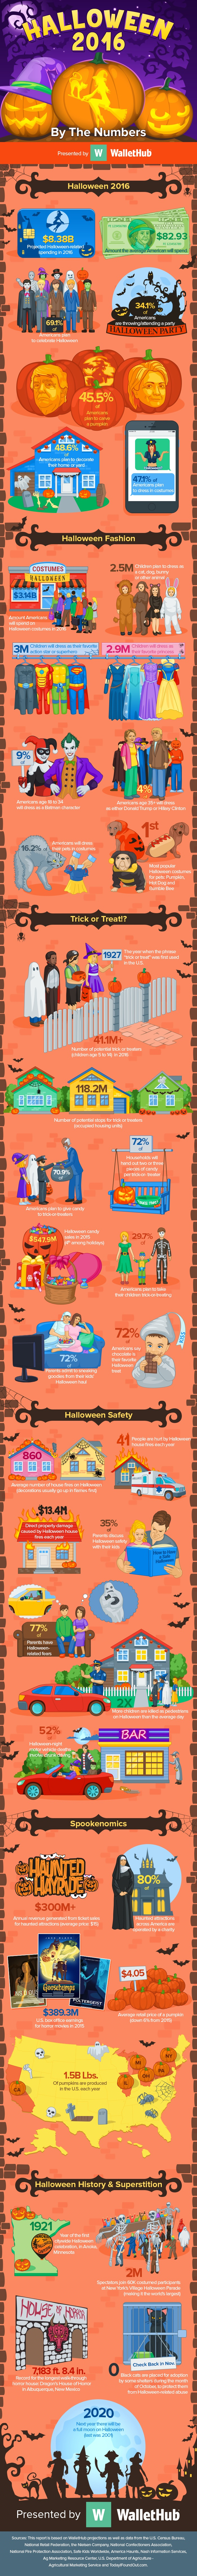 Halloween 2016 By The Numbers